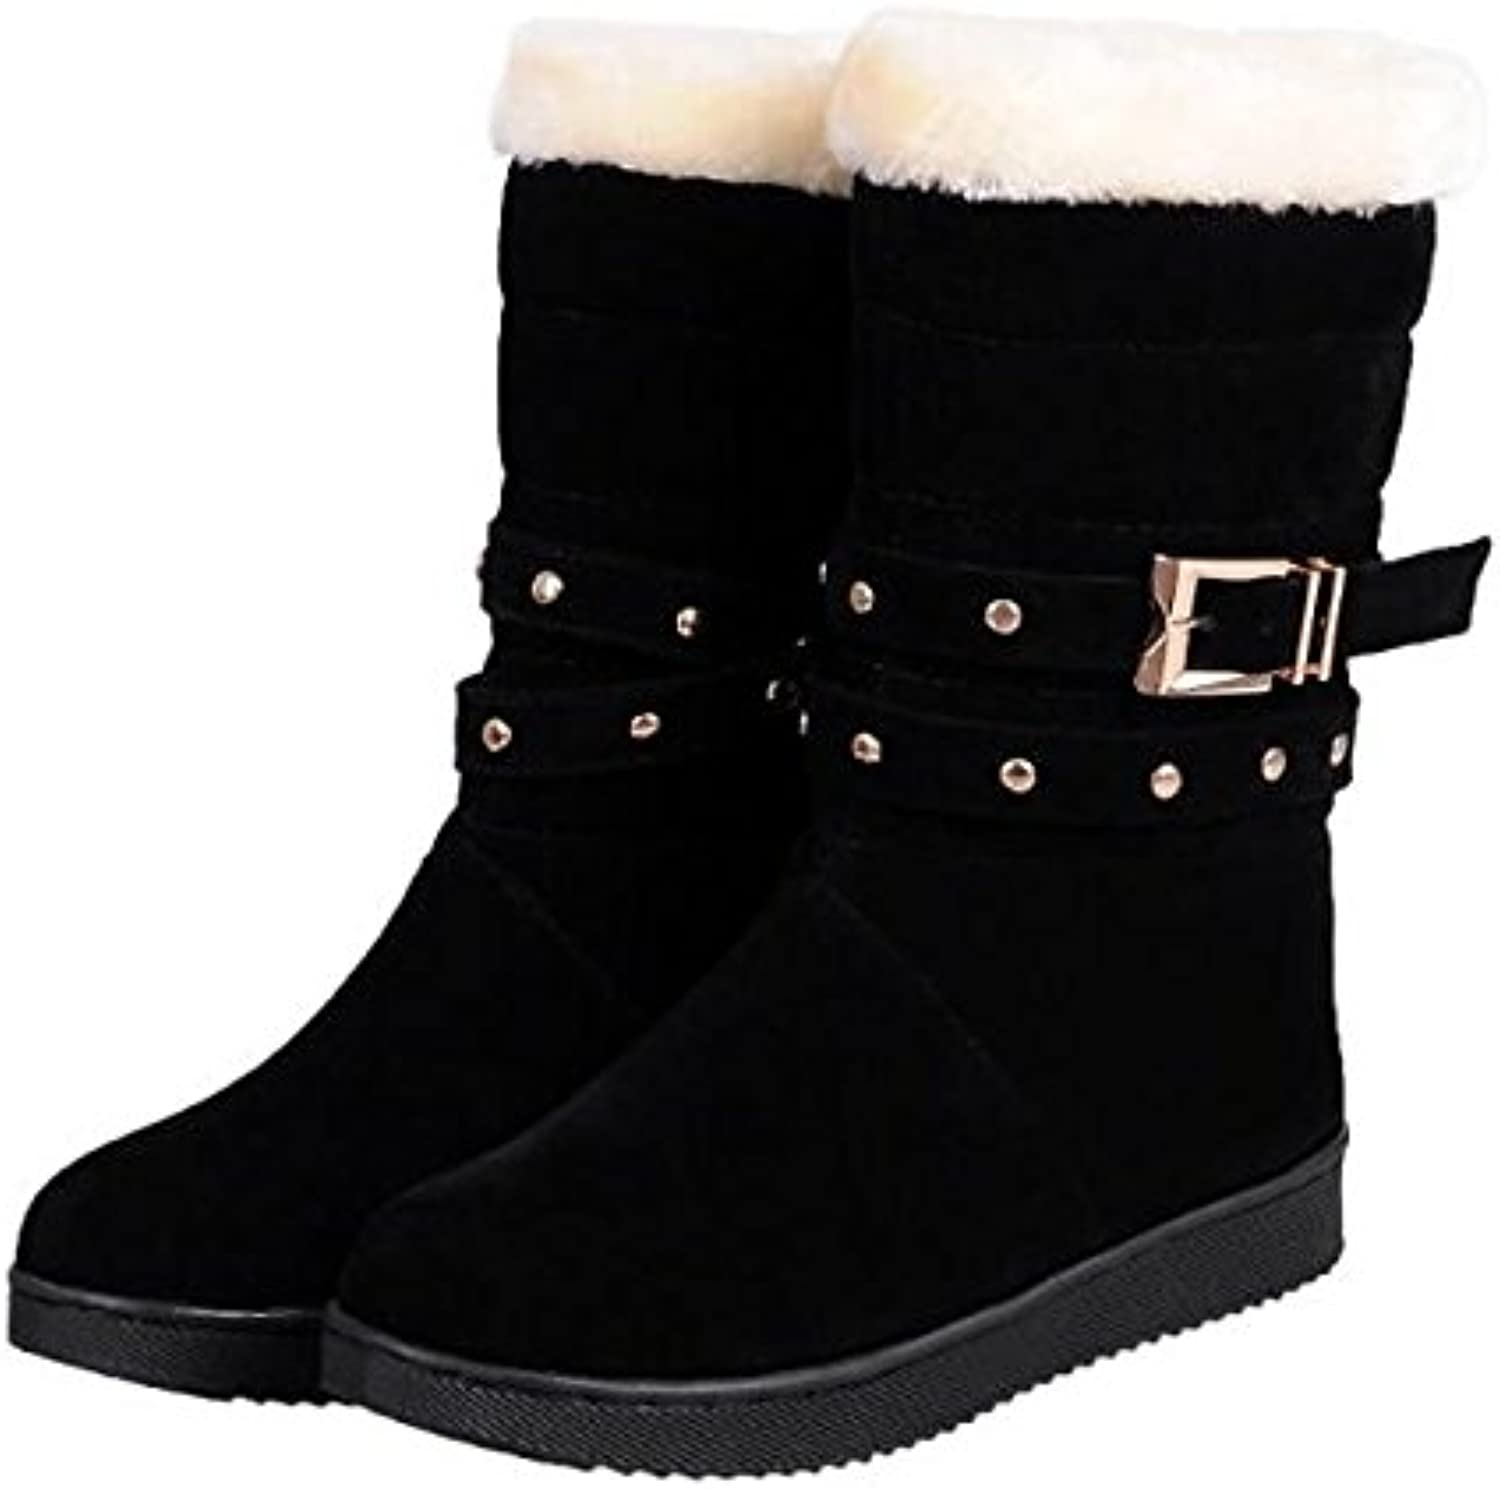 HSXZ Women's shoes Nubuck Leather Winter Fall Snow Boots Boots Round Toe MidCalf Boots for Casual Black Red Camel